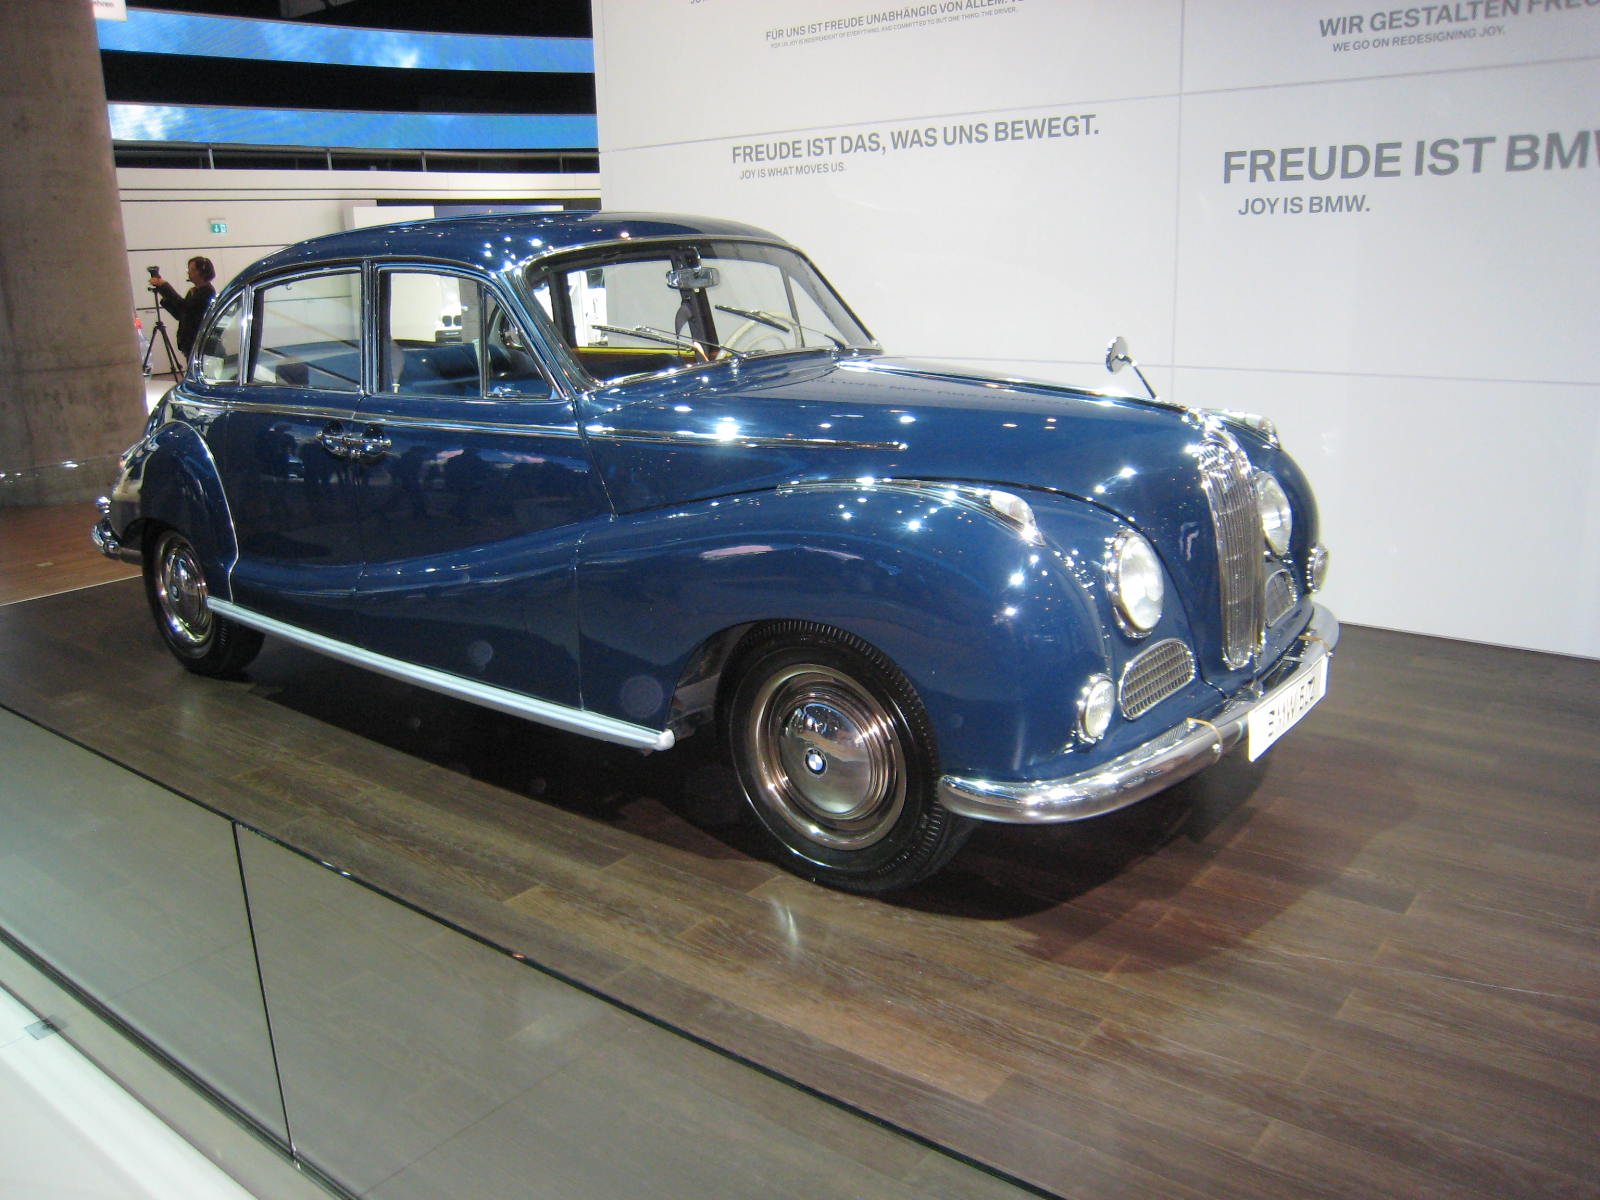 Prominently displayed inside BMW's new hall was a 1960 BMW 502 2.6 Luxus.